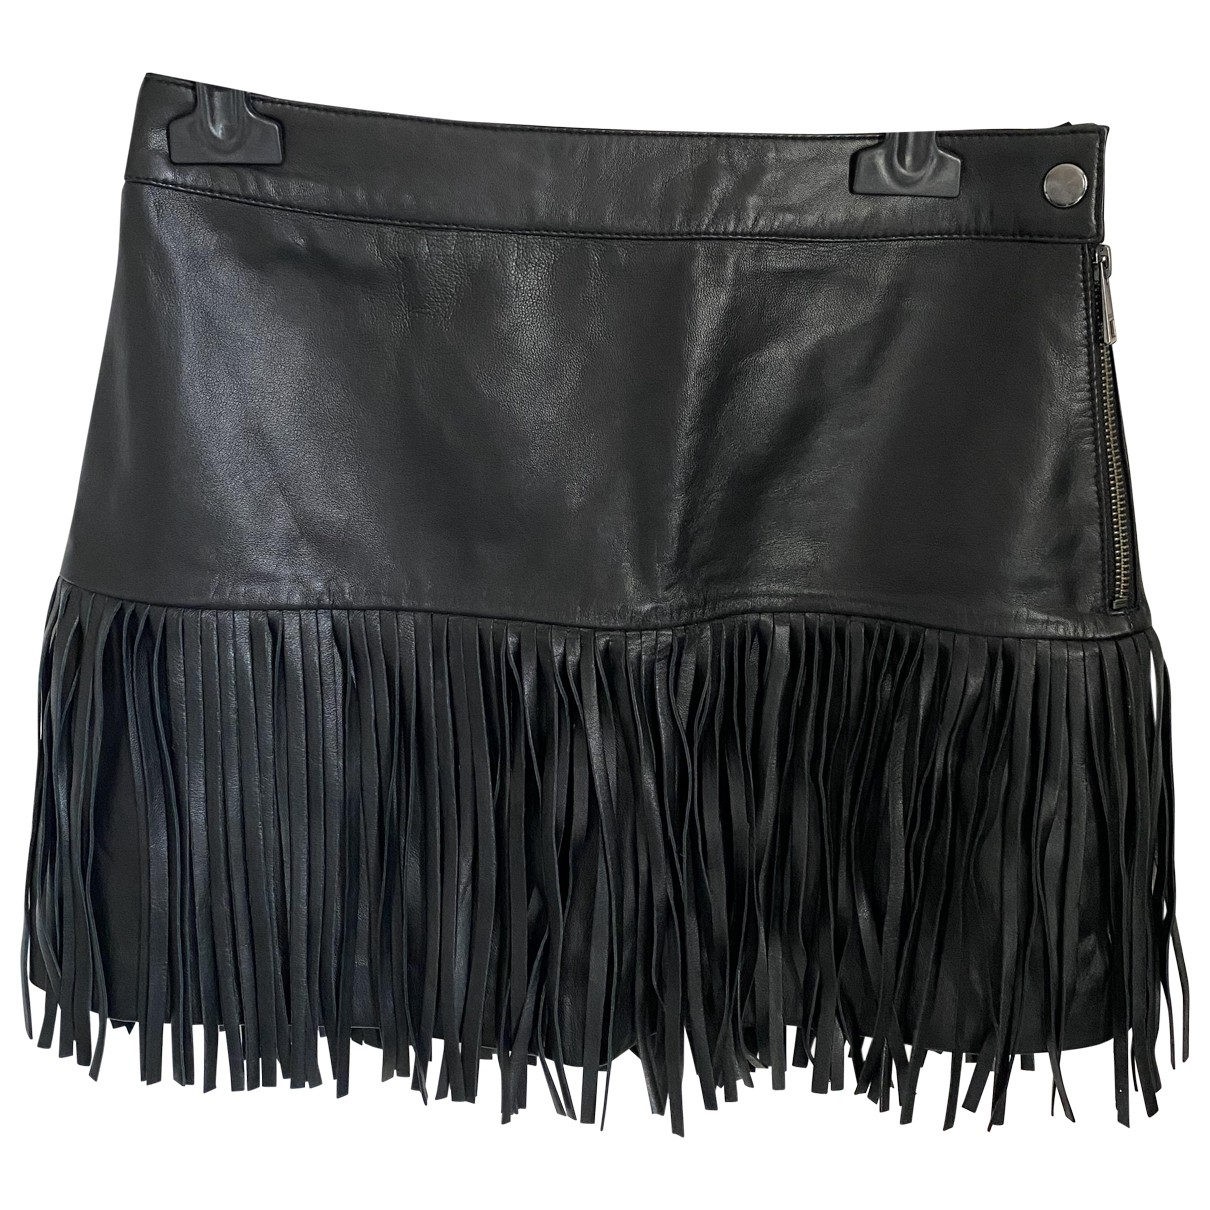 Zadig & Voltaire \N Black Leather skirt for Women 34 FR